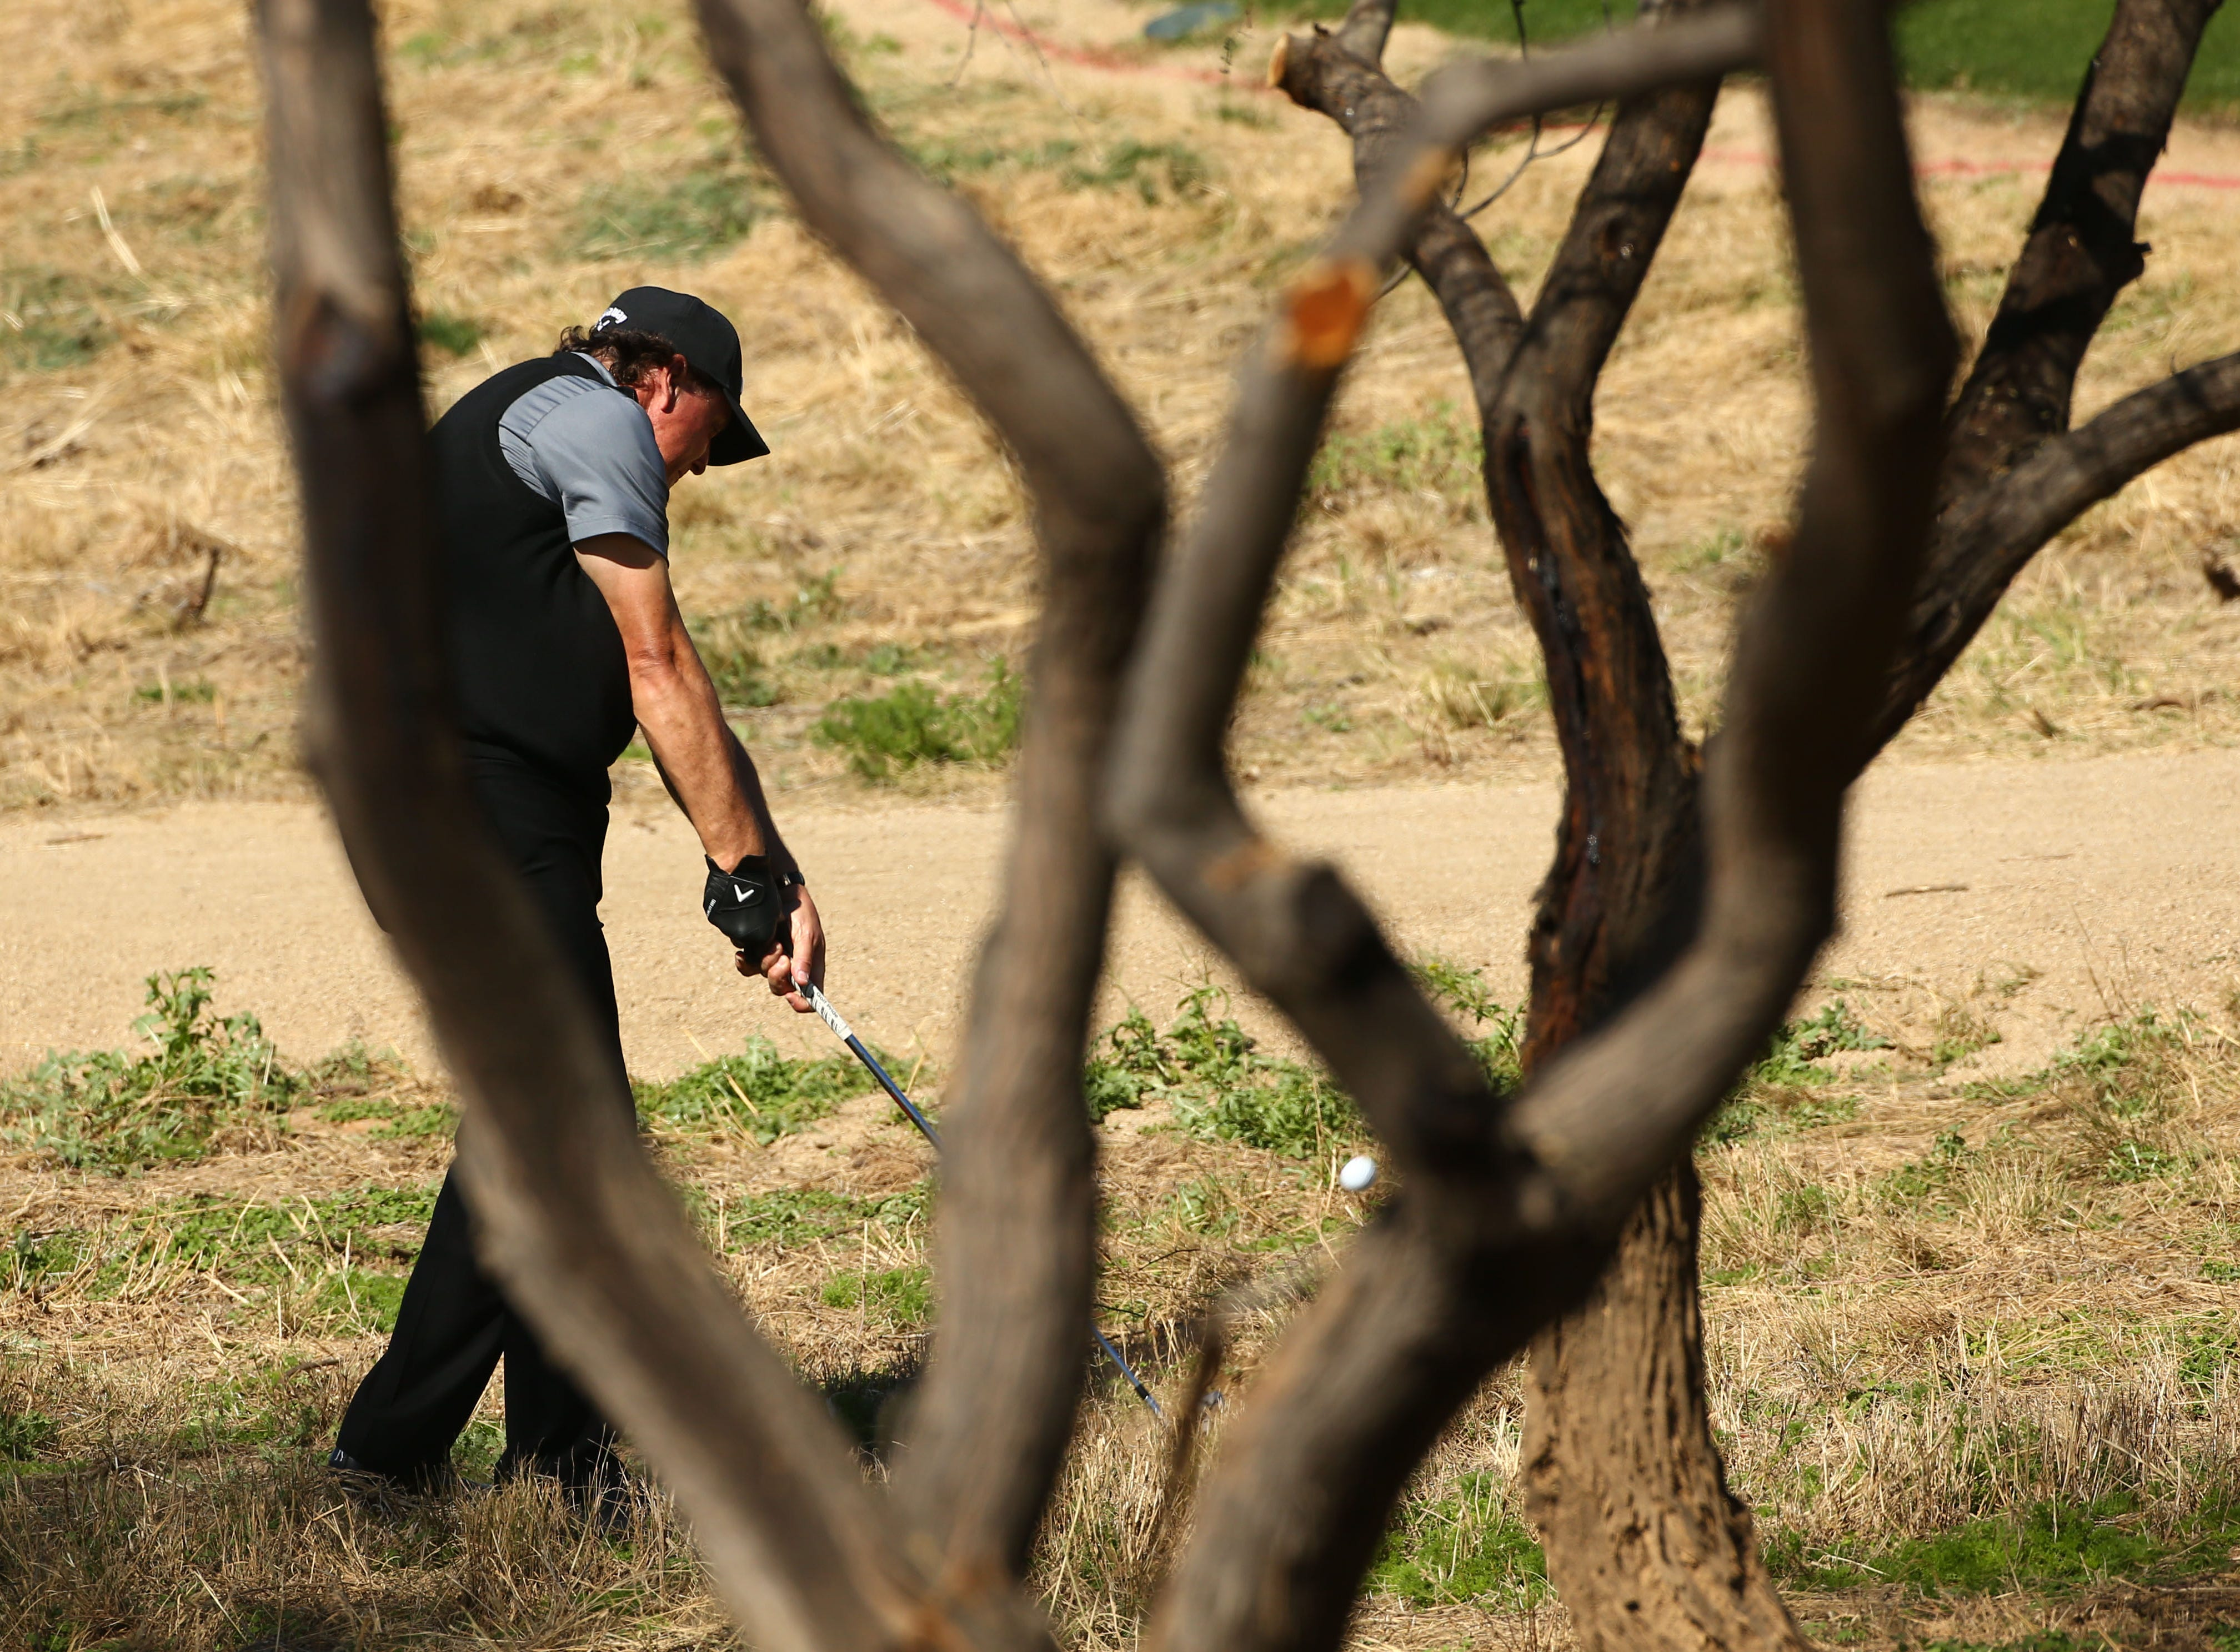 Phil Mickelson plays his second shot over trees in a desert area on the 9th hole during second round action on Feb. 1 during the Waste Management Phoenix Open at the TPC Scottsdale Stadium Course.